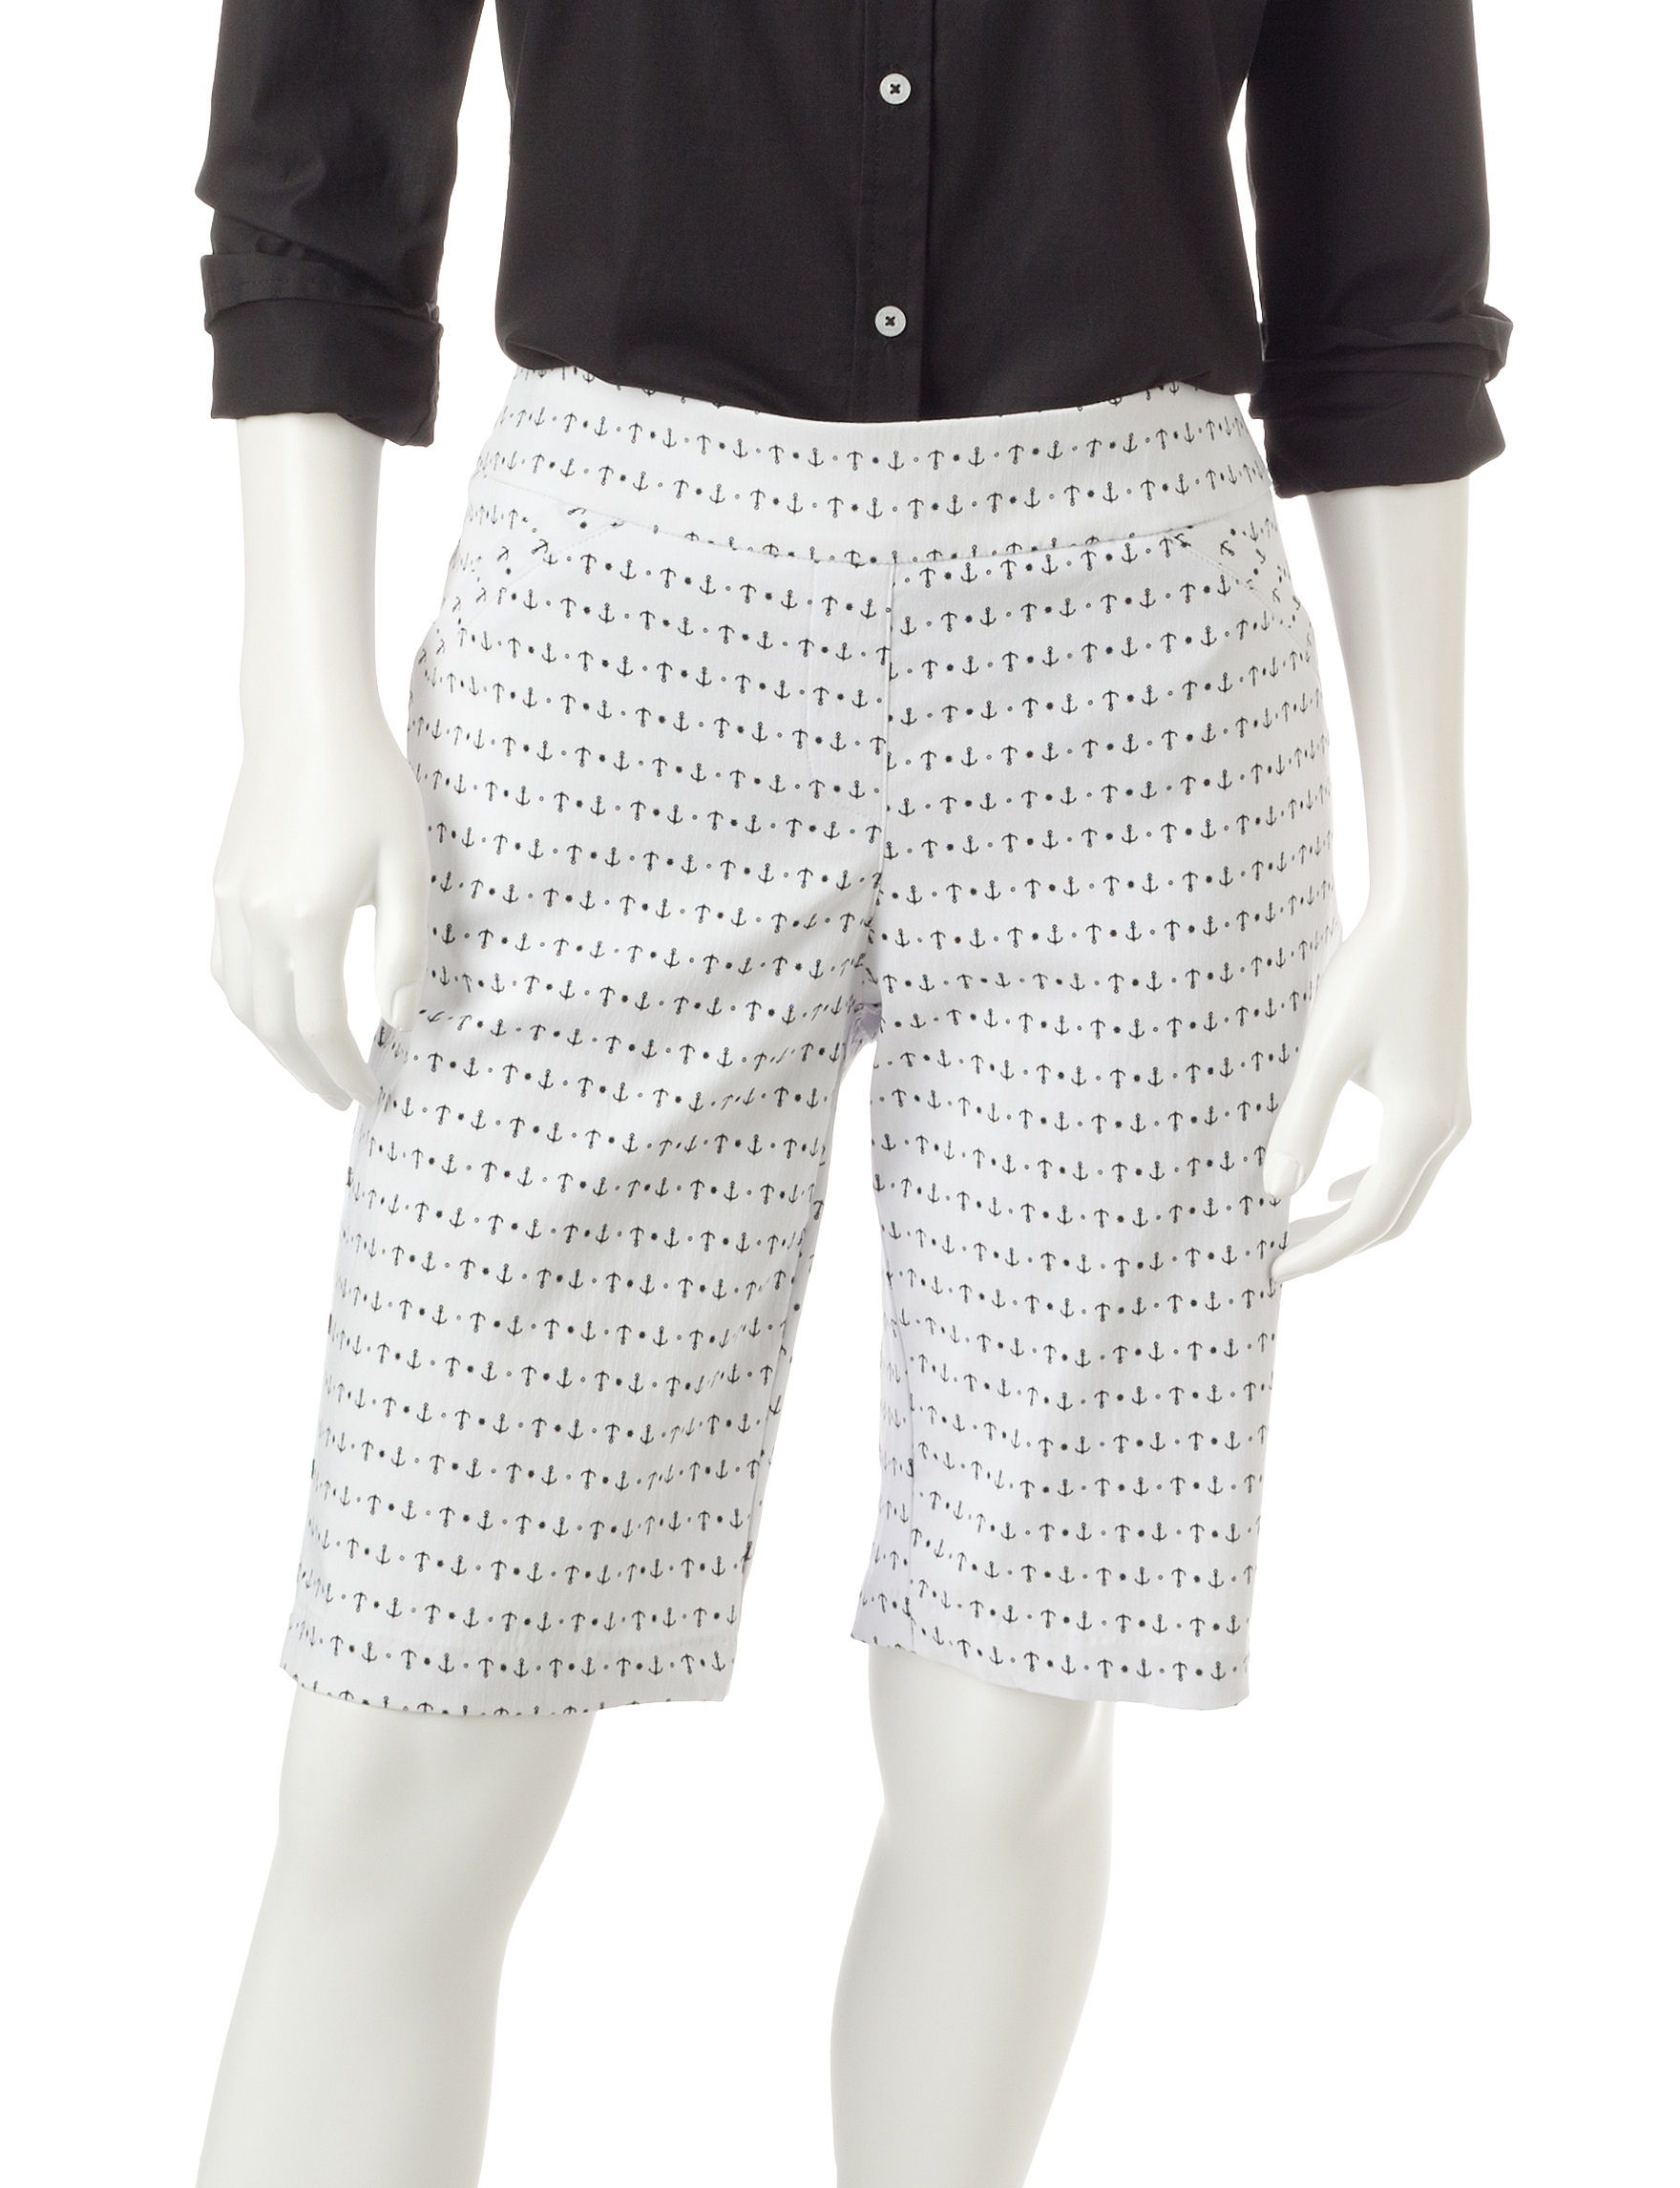 Briggs New York White / Black Capris & Crops Stretch Tailored Shorts